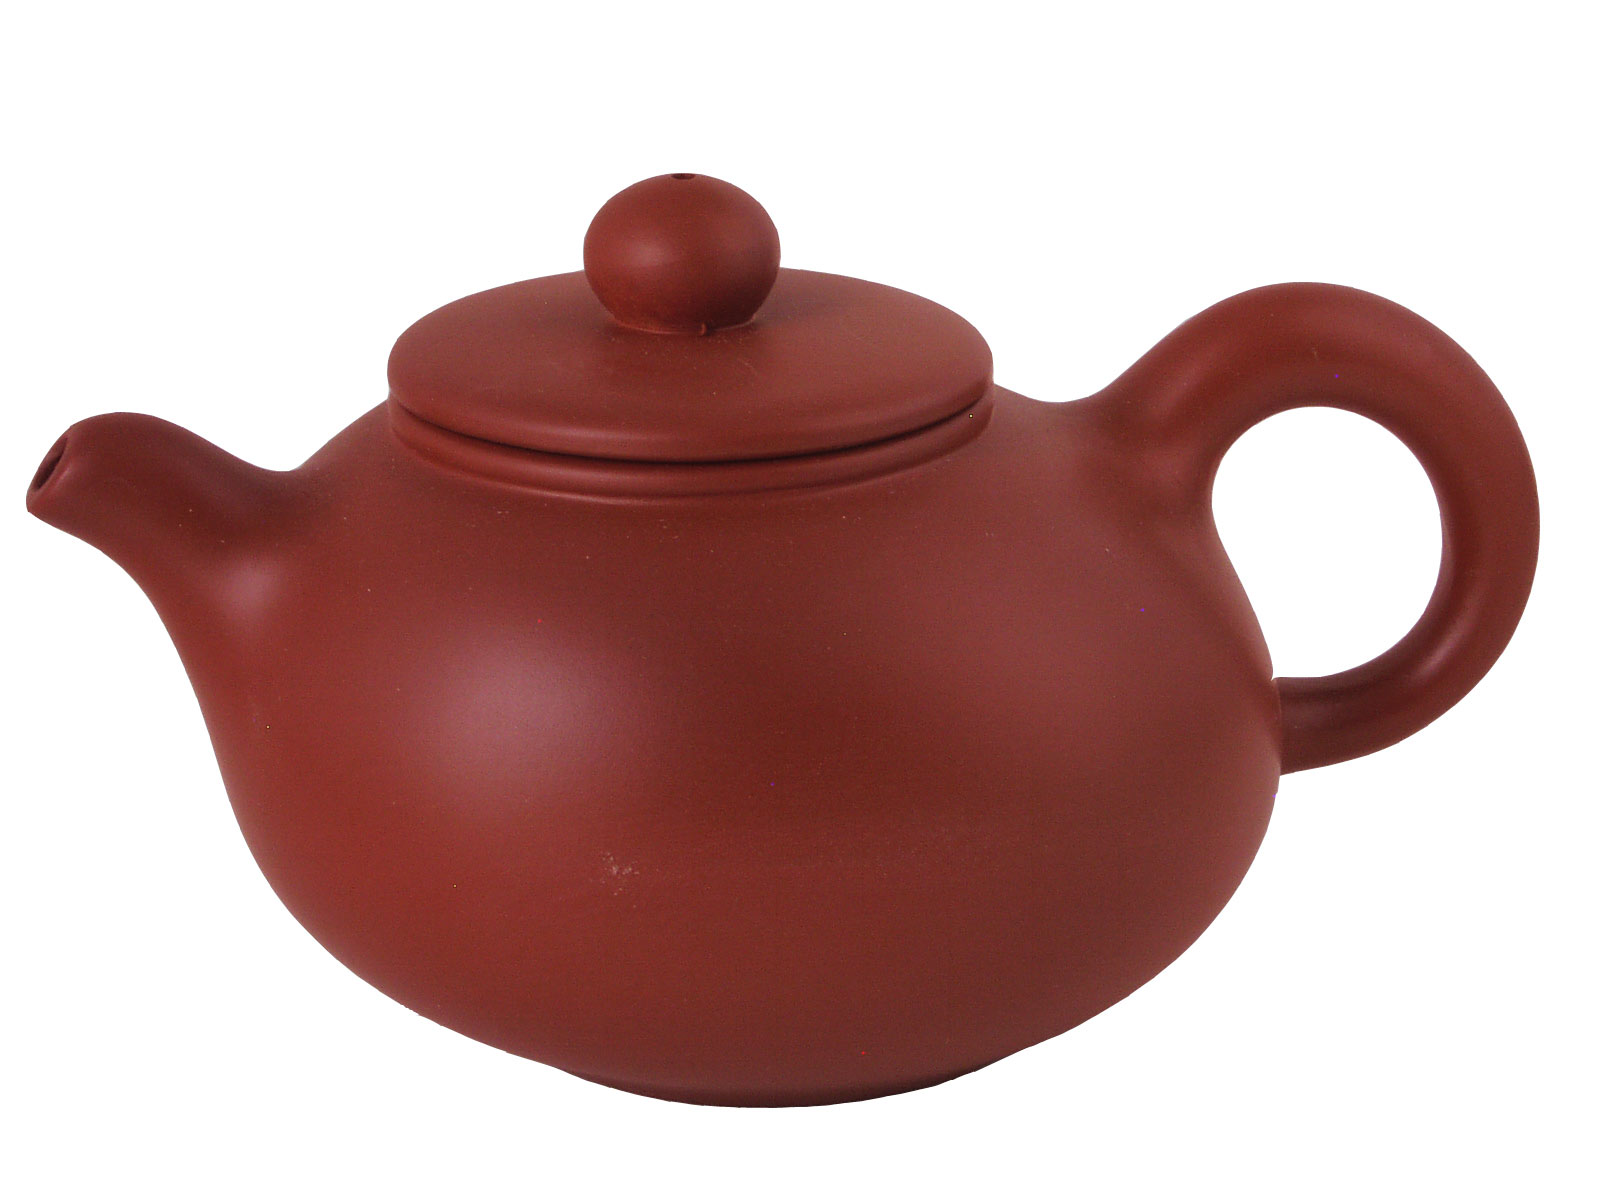 Unique Kitchen Canisters Clay Red Whimsical Yixing Zisha Teapot